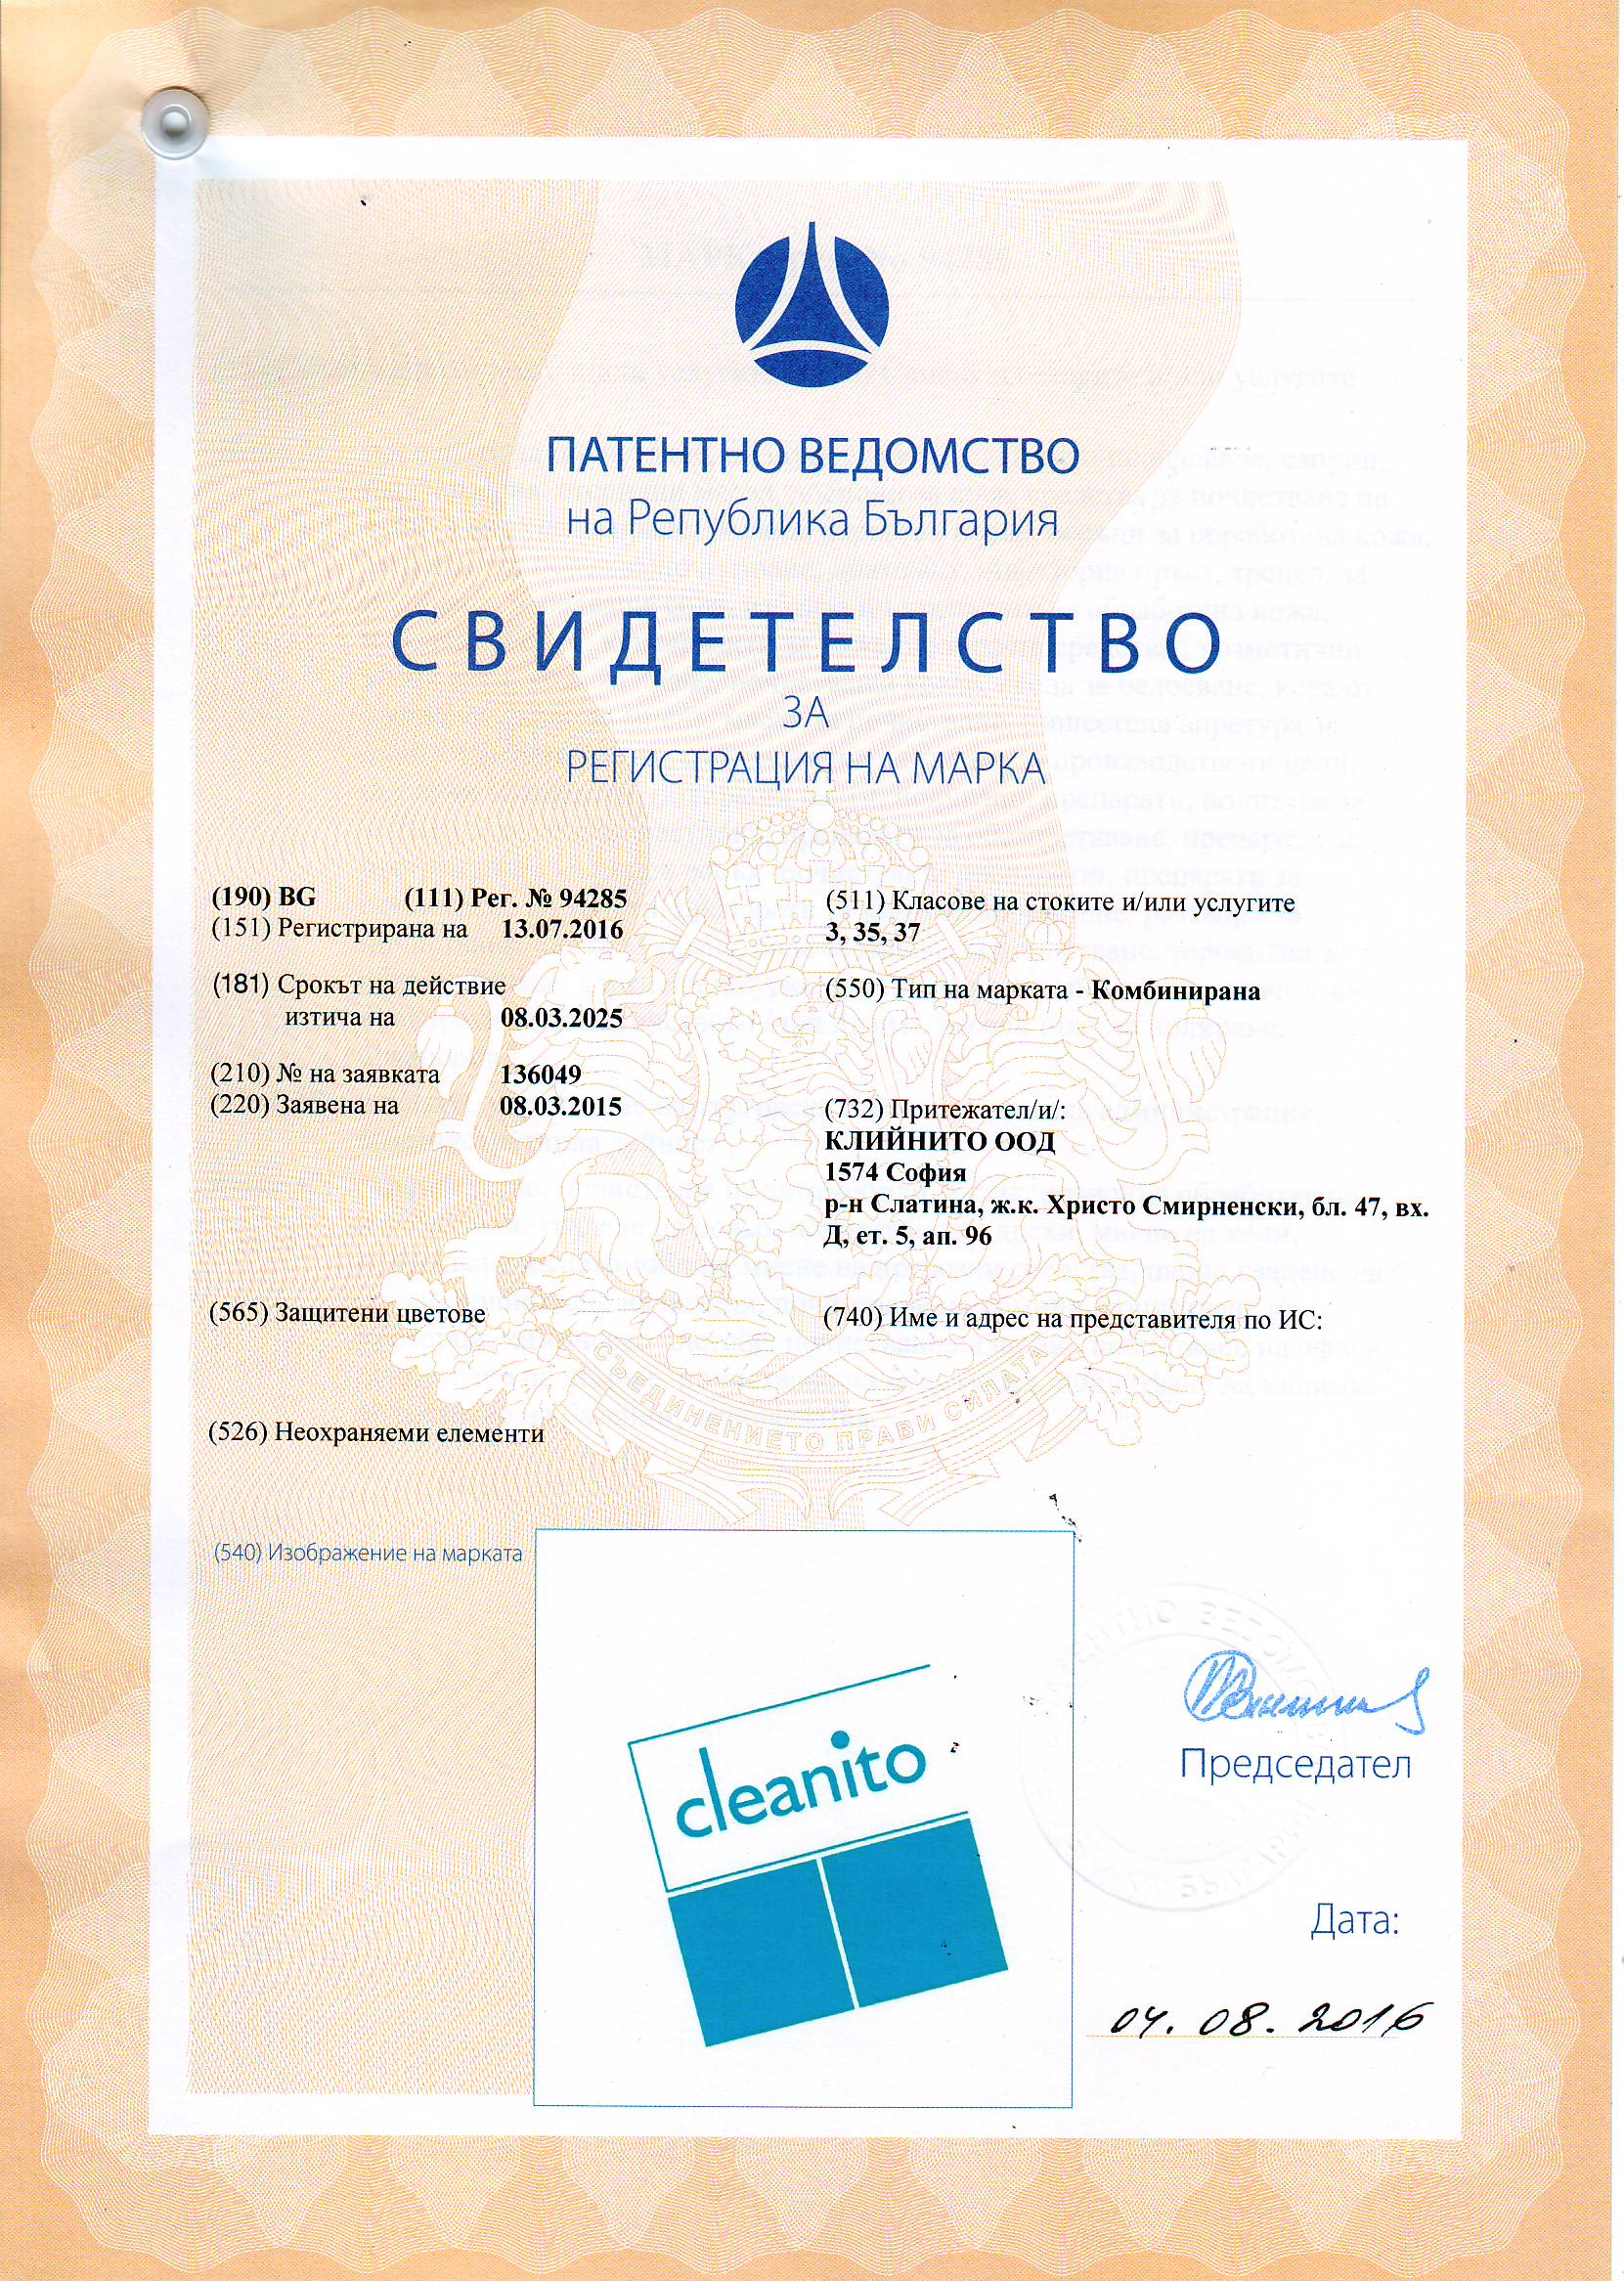 Cleanito trade mark